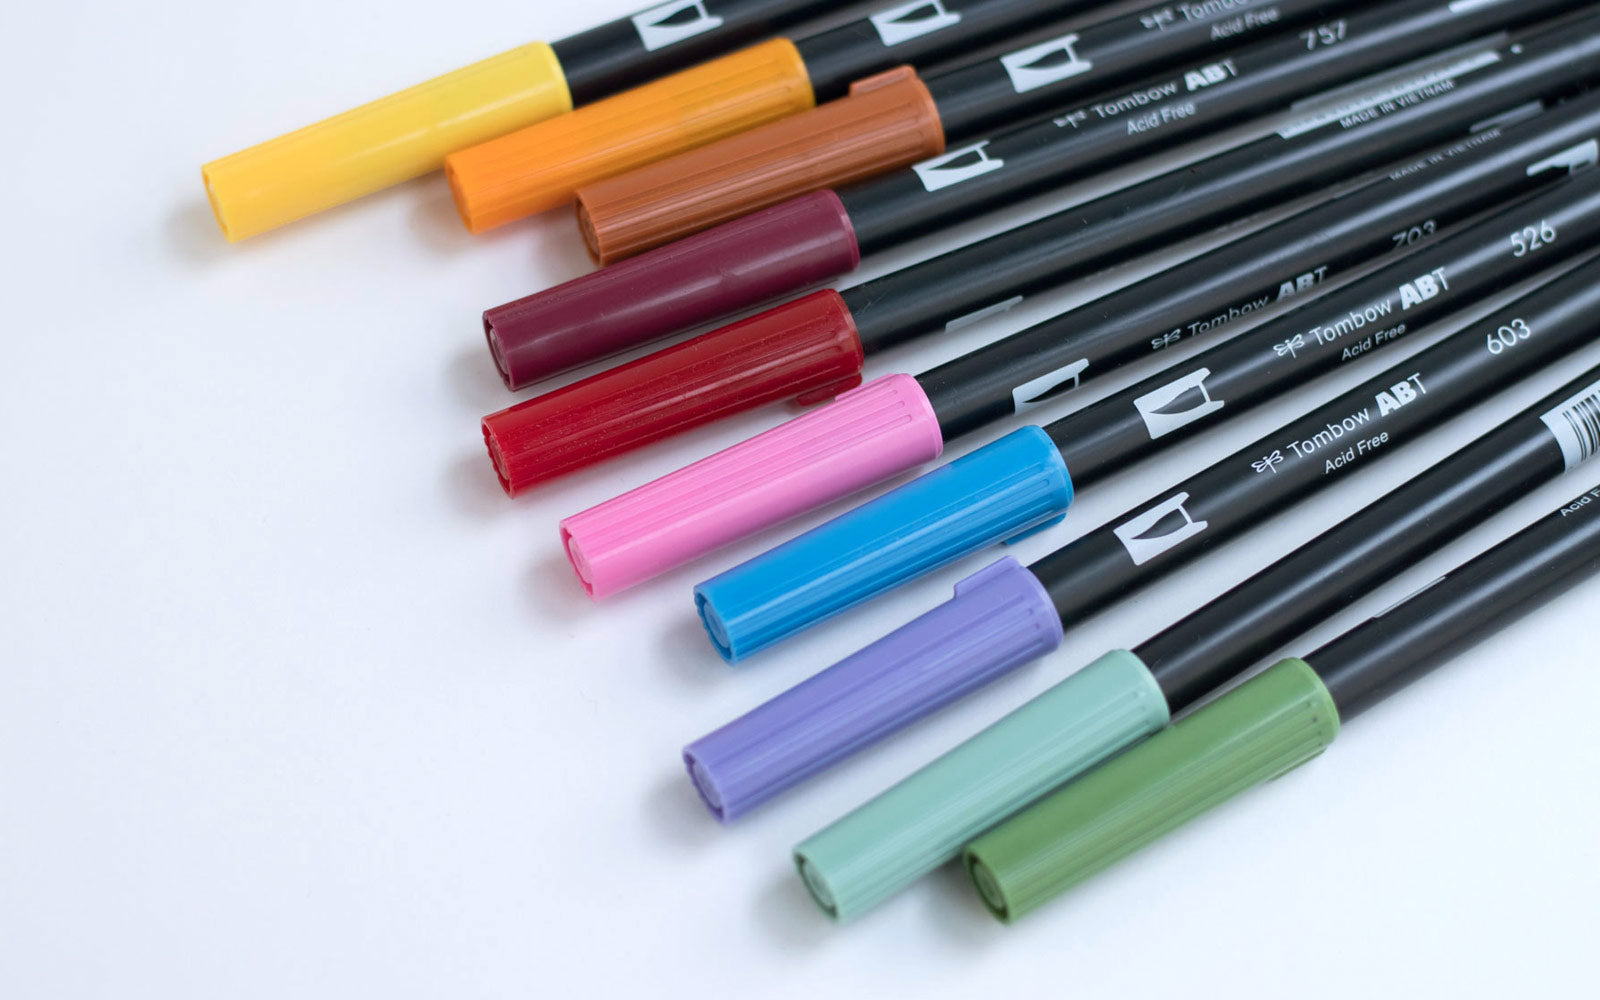 Tombow ABT Dual Brush Pens London Stationery - Tombow abt